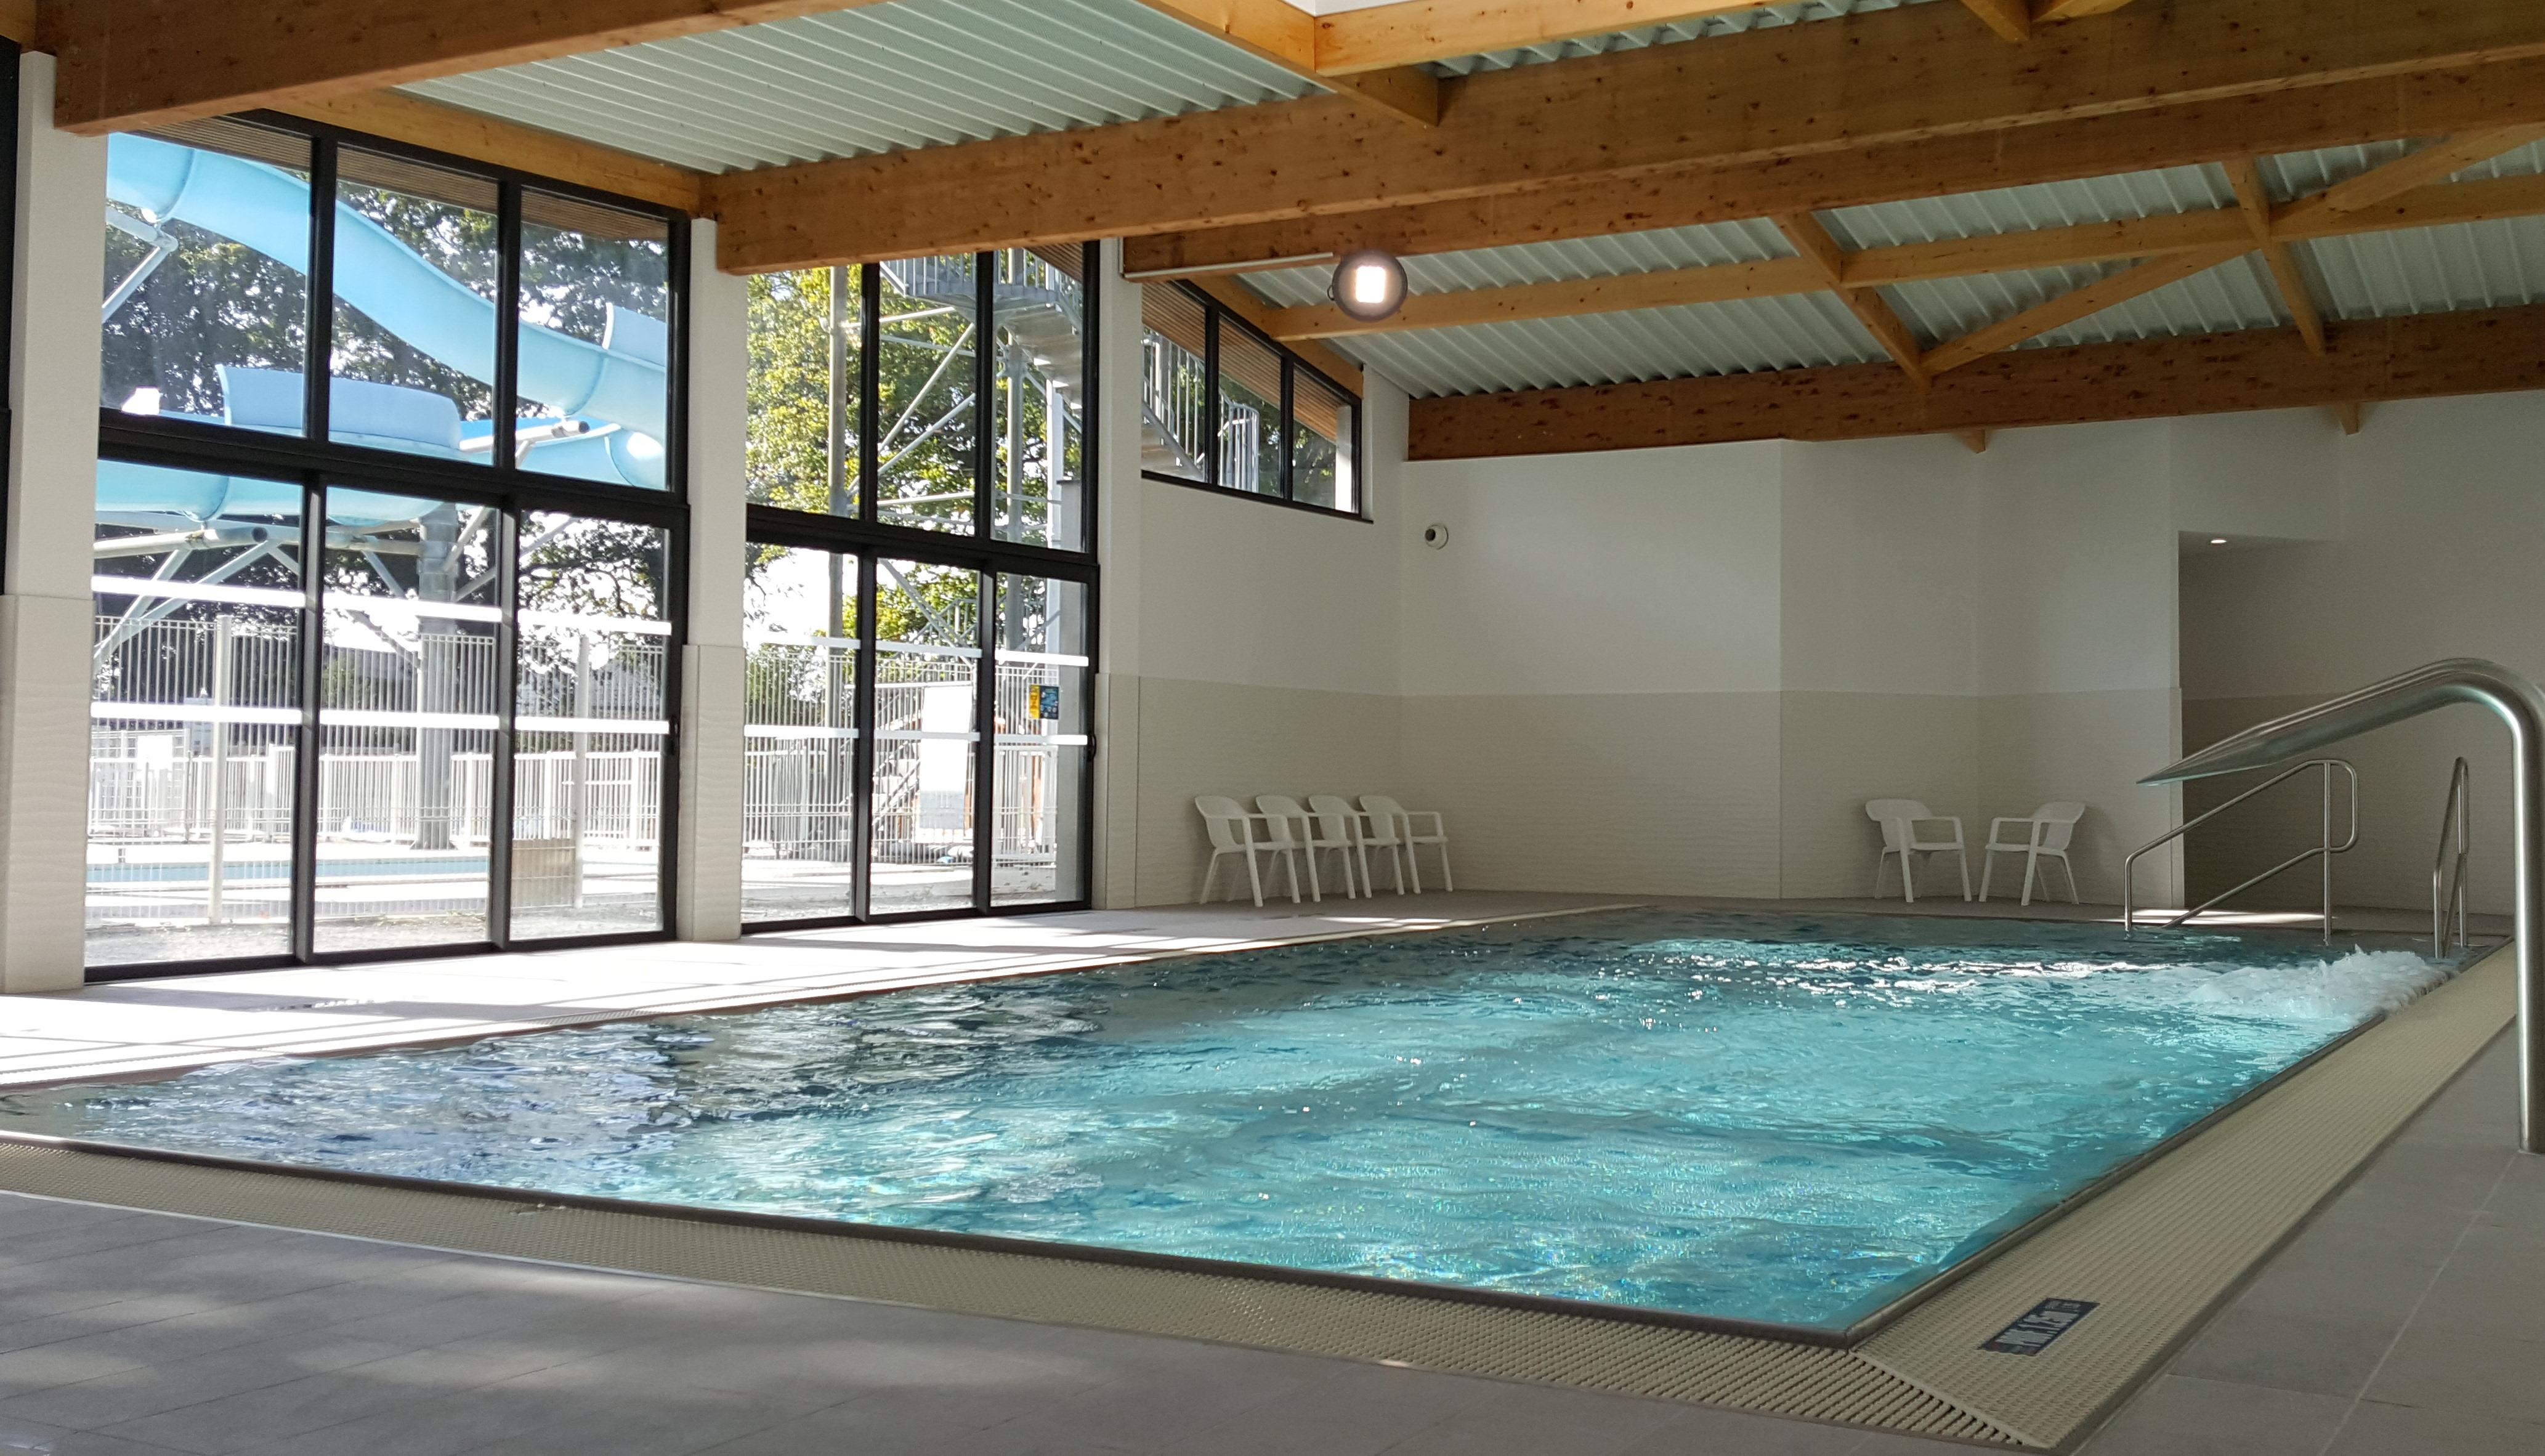 Cheap la baule pitches rentals with cash piscine la roche for Cash piscine la roche sur yon telephone